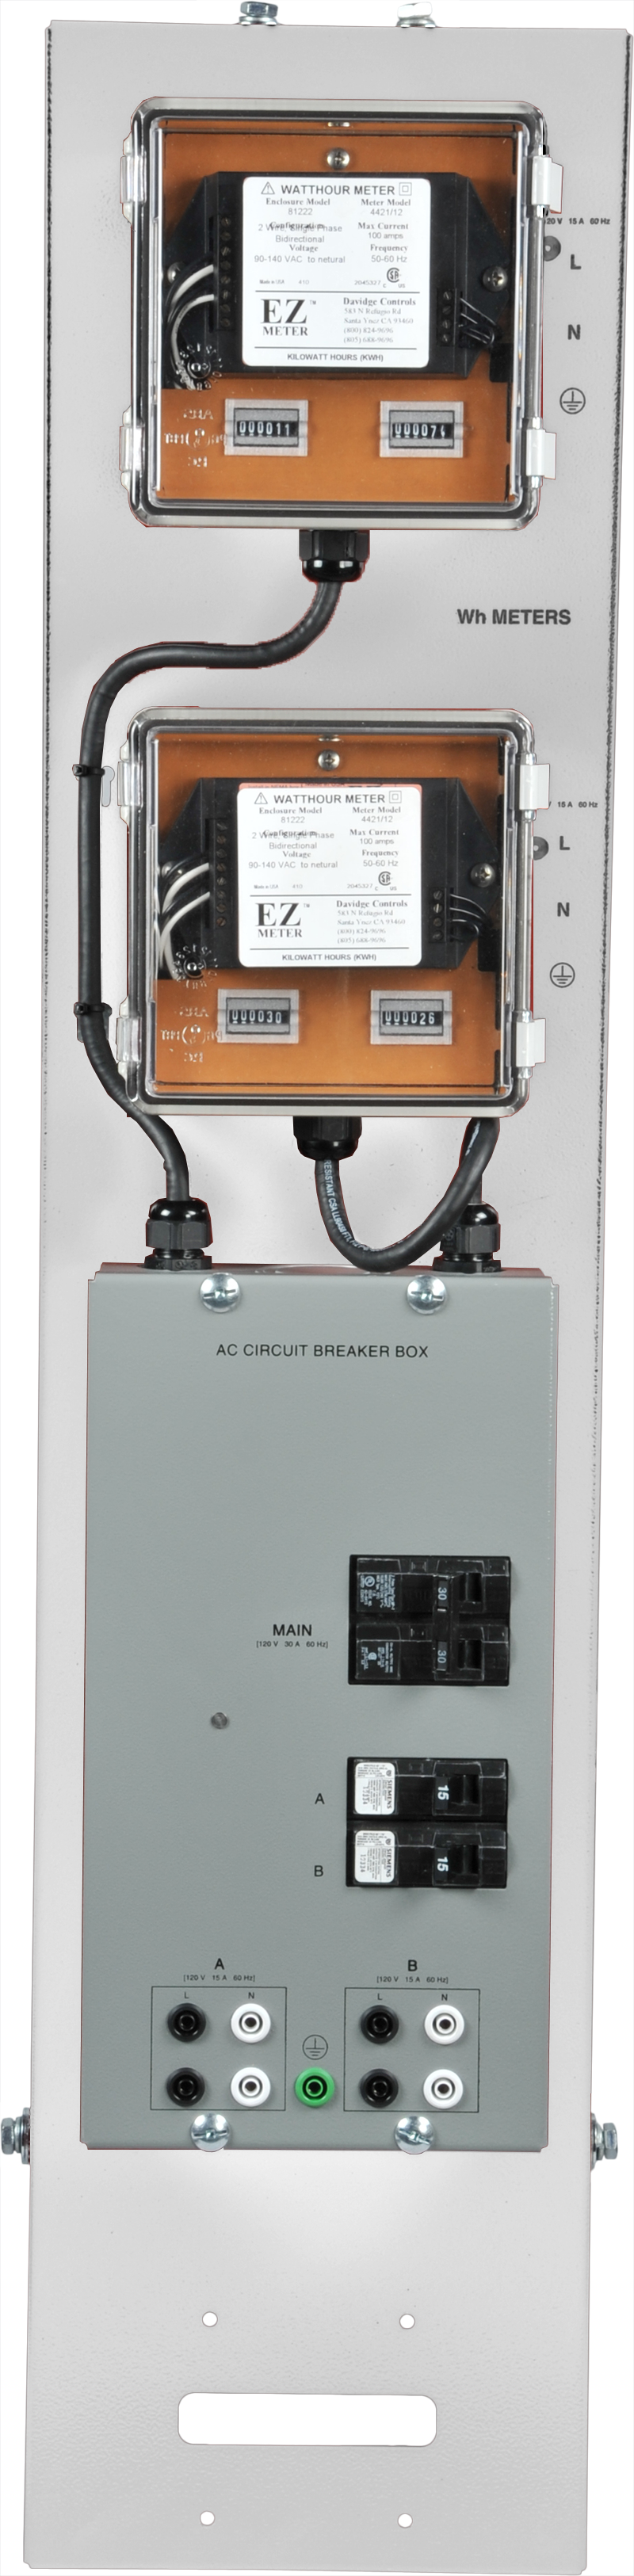 Labvolt Series By Festo Didactic Kwh Meters With Ac Circuit Breaker Box Ul Csa Certified